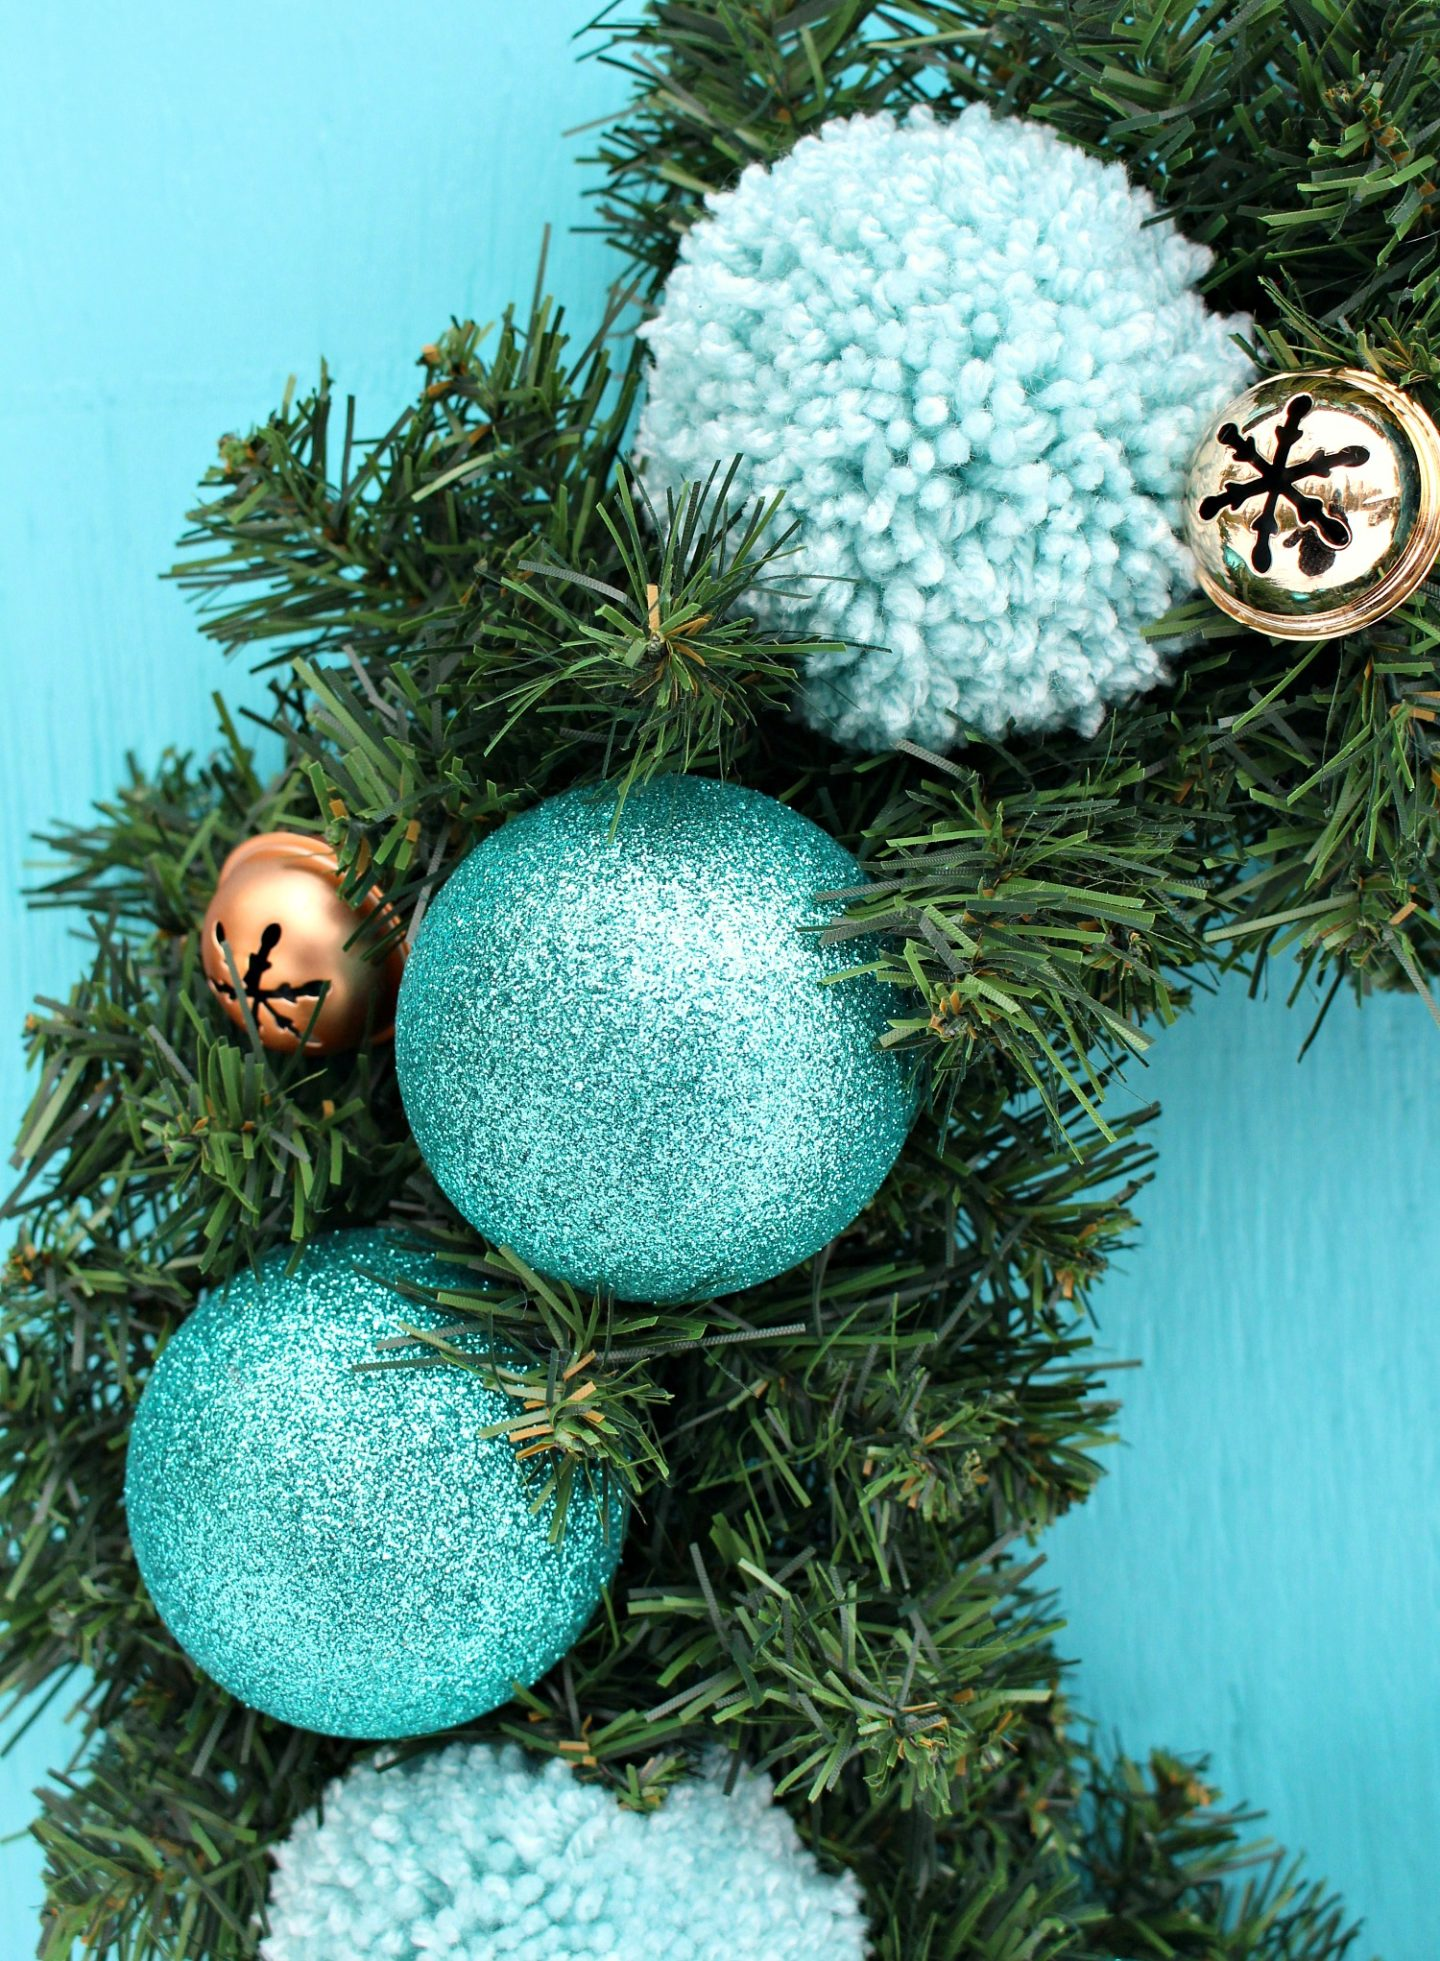 Turquoise Wreath DIY Idea